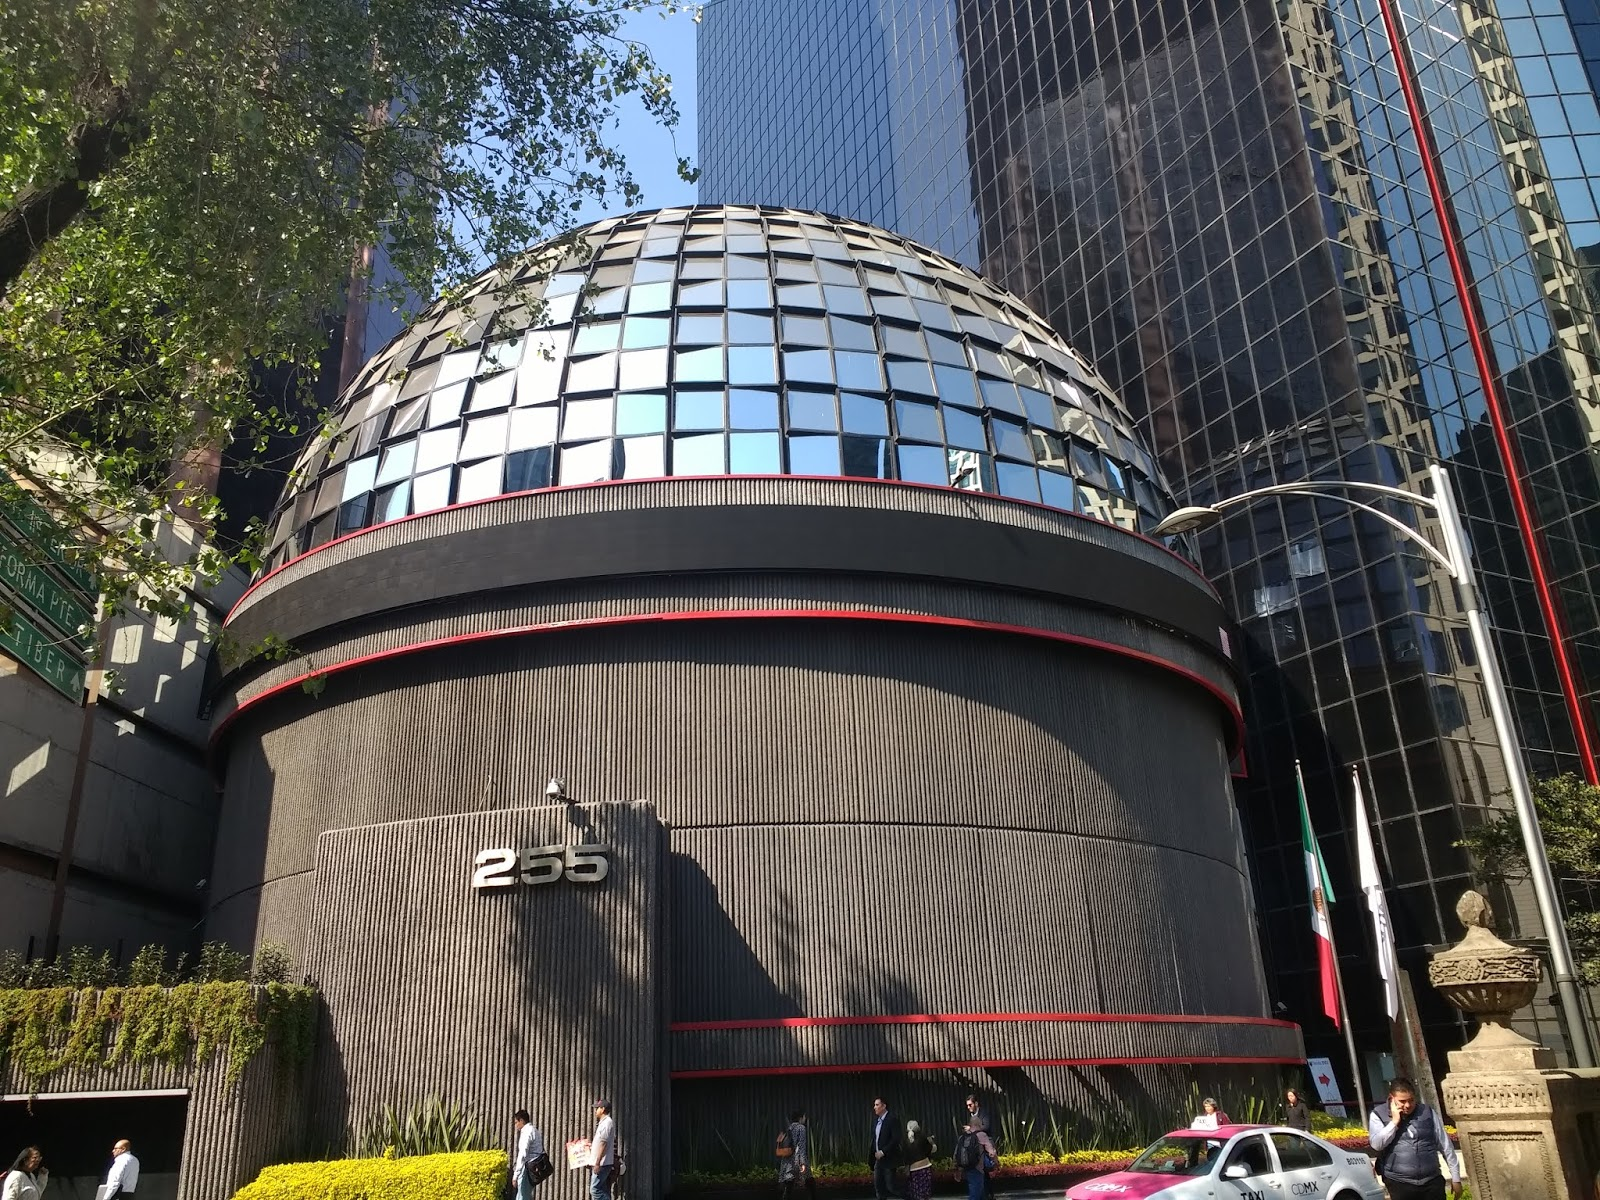 the mirror ball building in front of a futuristic pencil thin building comprised the city s bolsa de valores or stock exchange